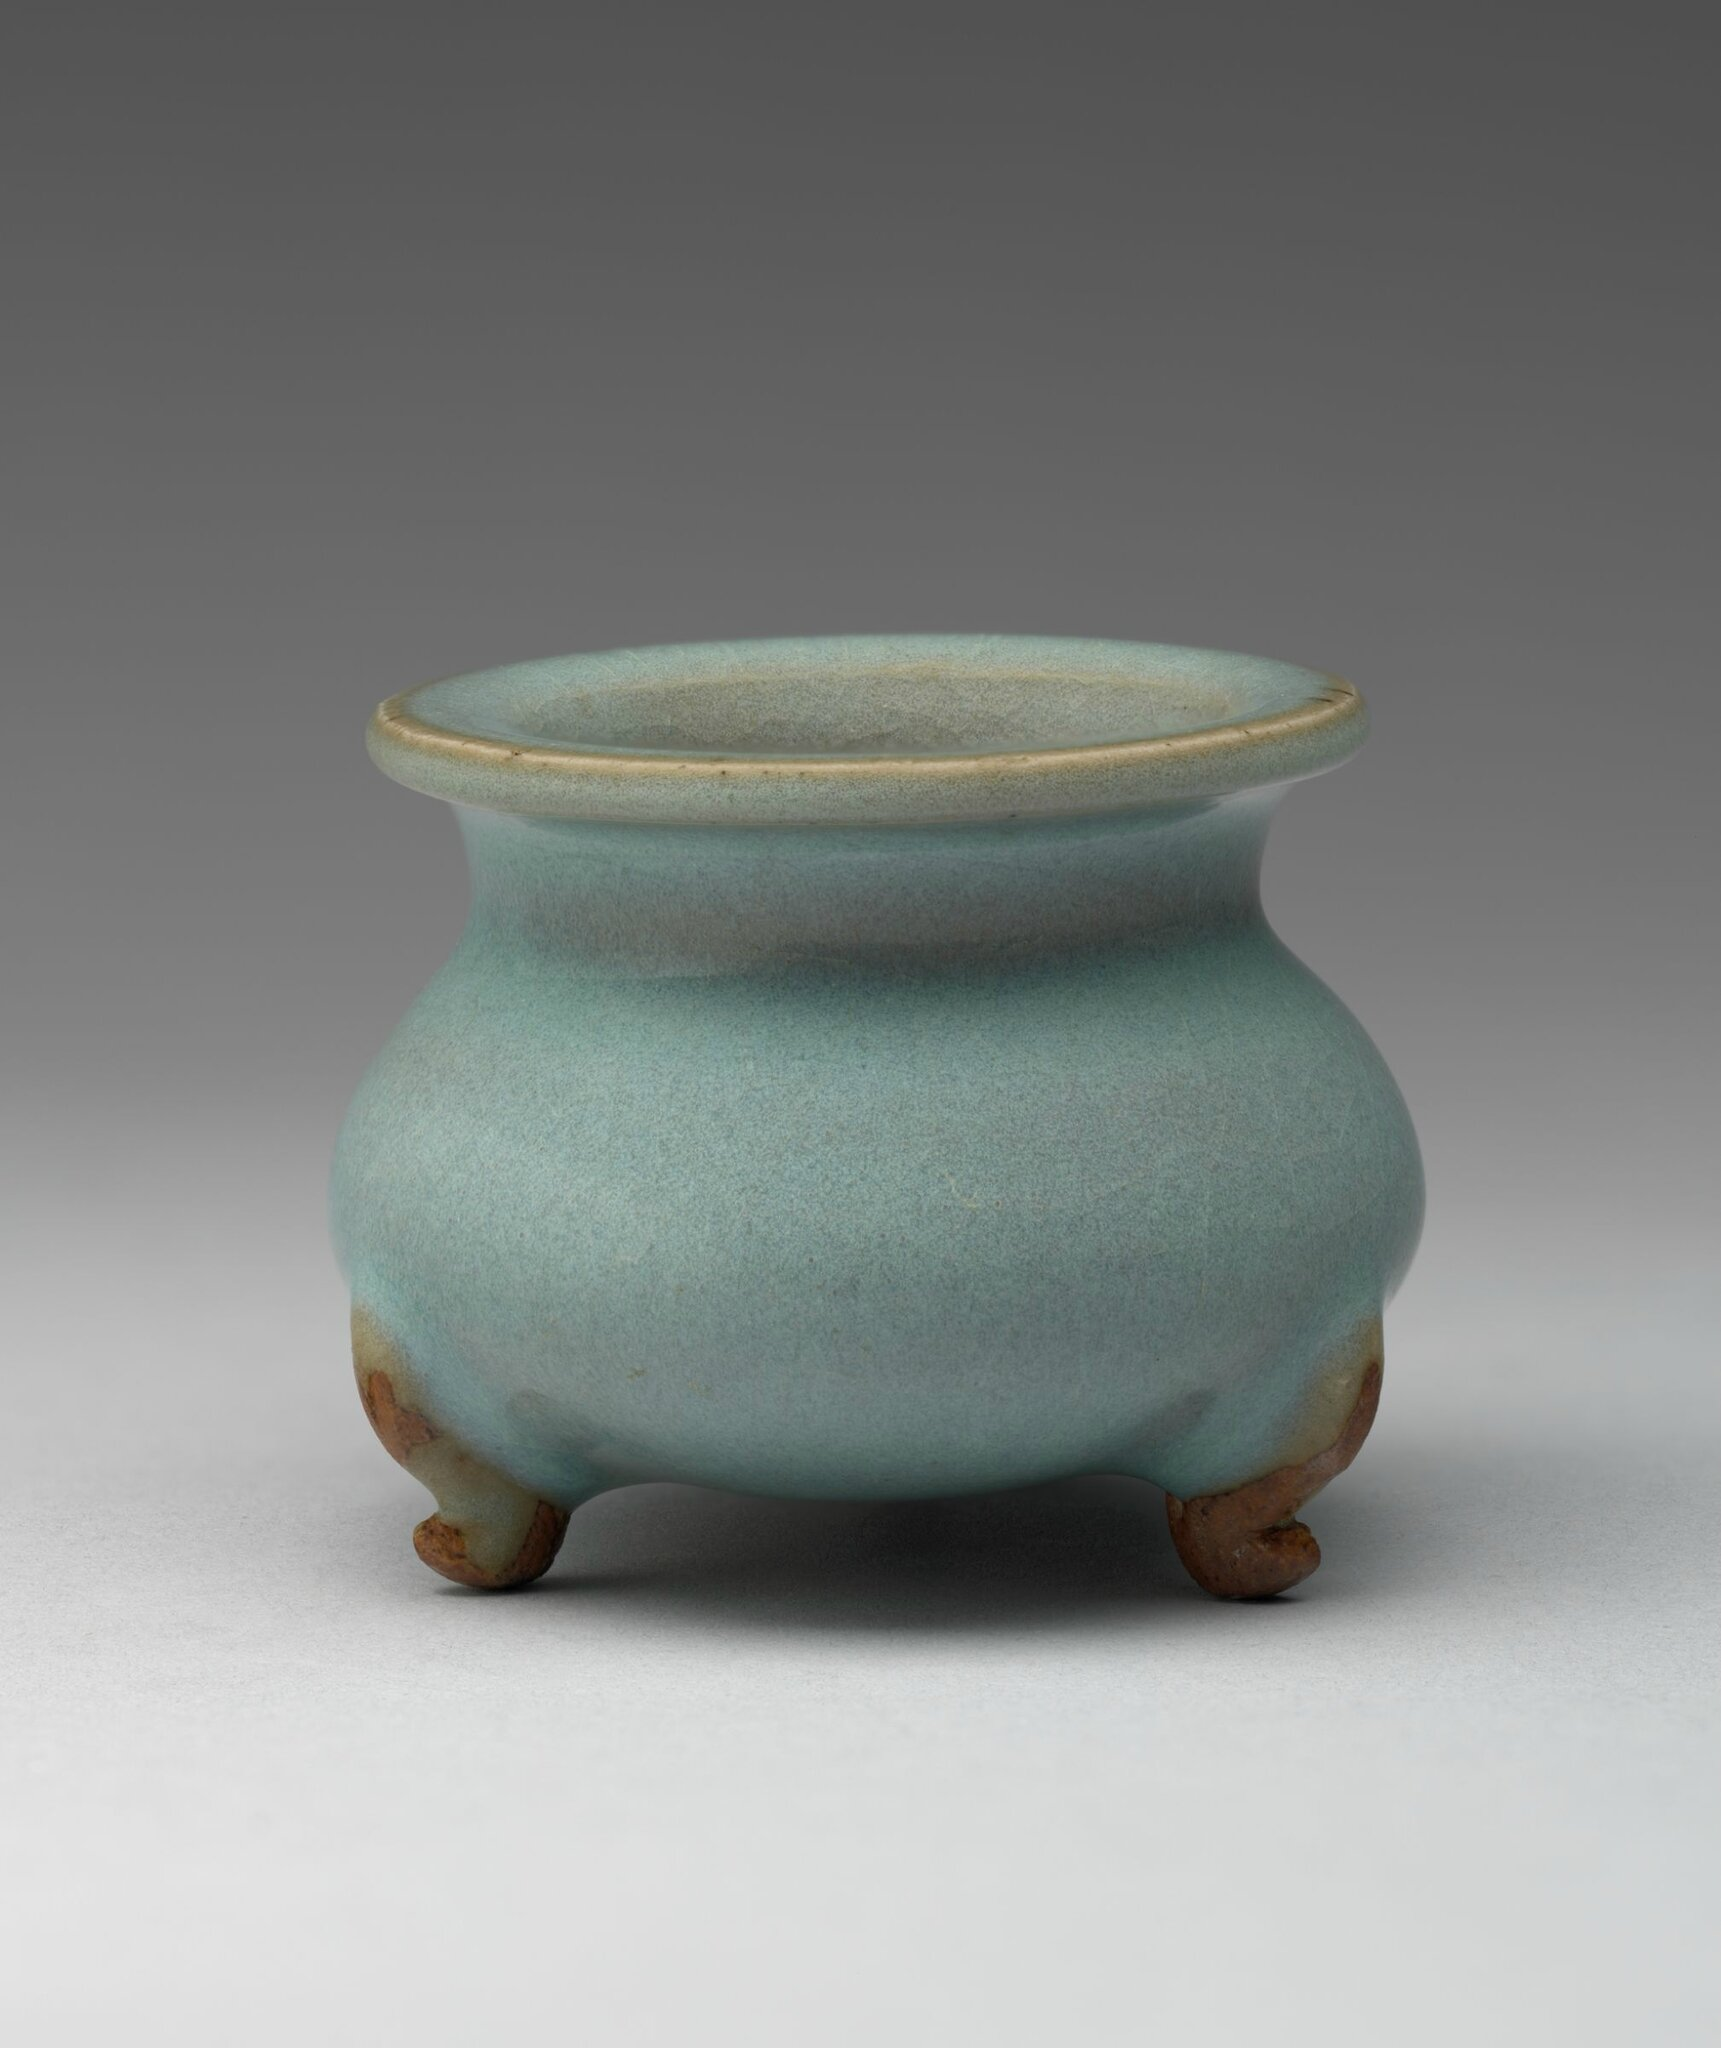 Small Censer in the Form of an Archaic Bronze 'Ding' Tripod Vessel, Jin dynasty, 1115-1234, 12th-13th century